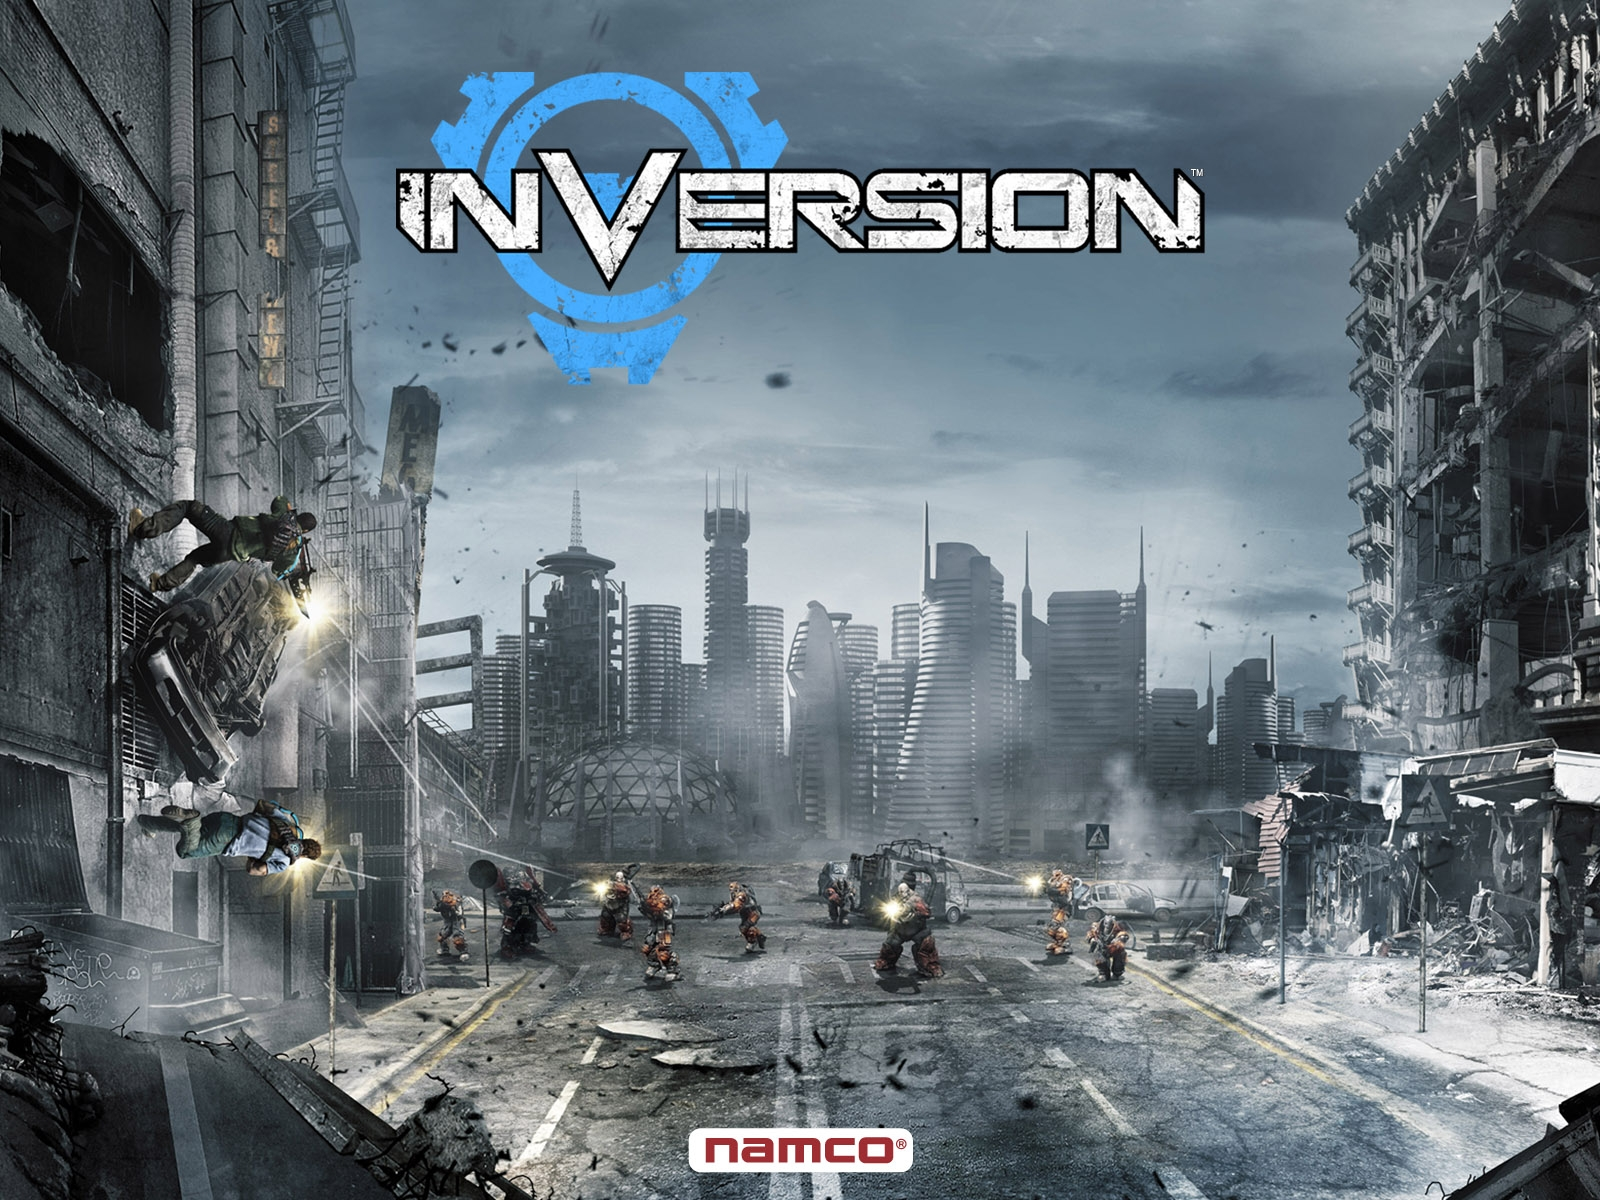 Bad Pc Setup Inversion Game Free Download - Ocean Of Games